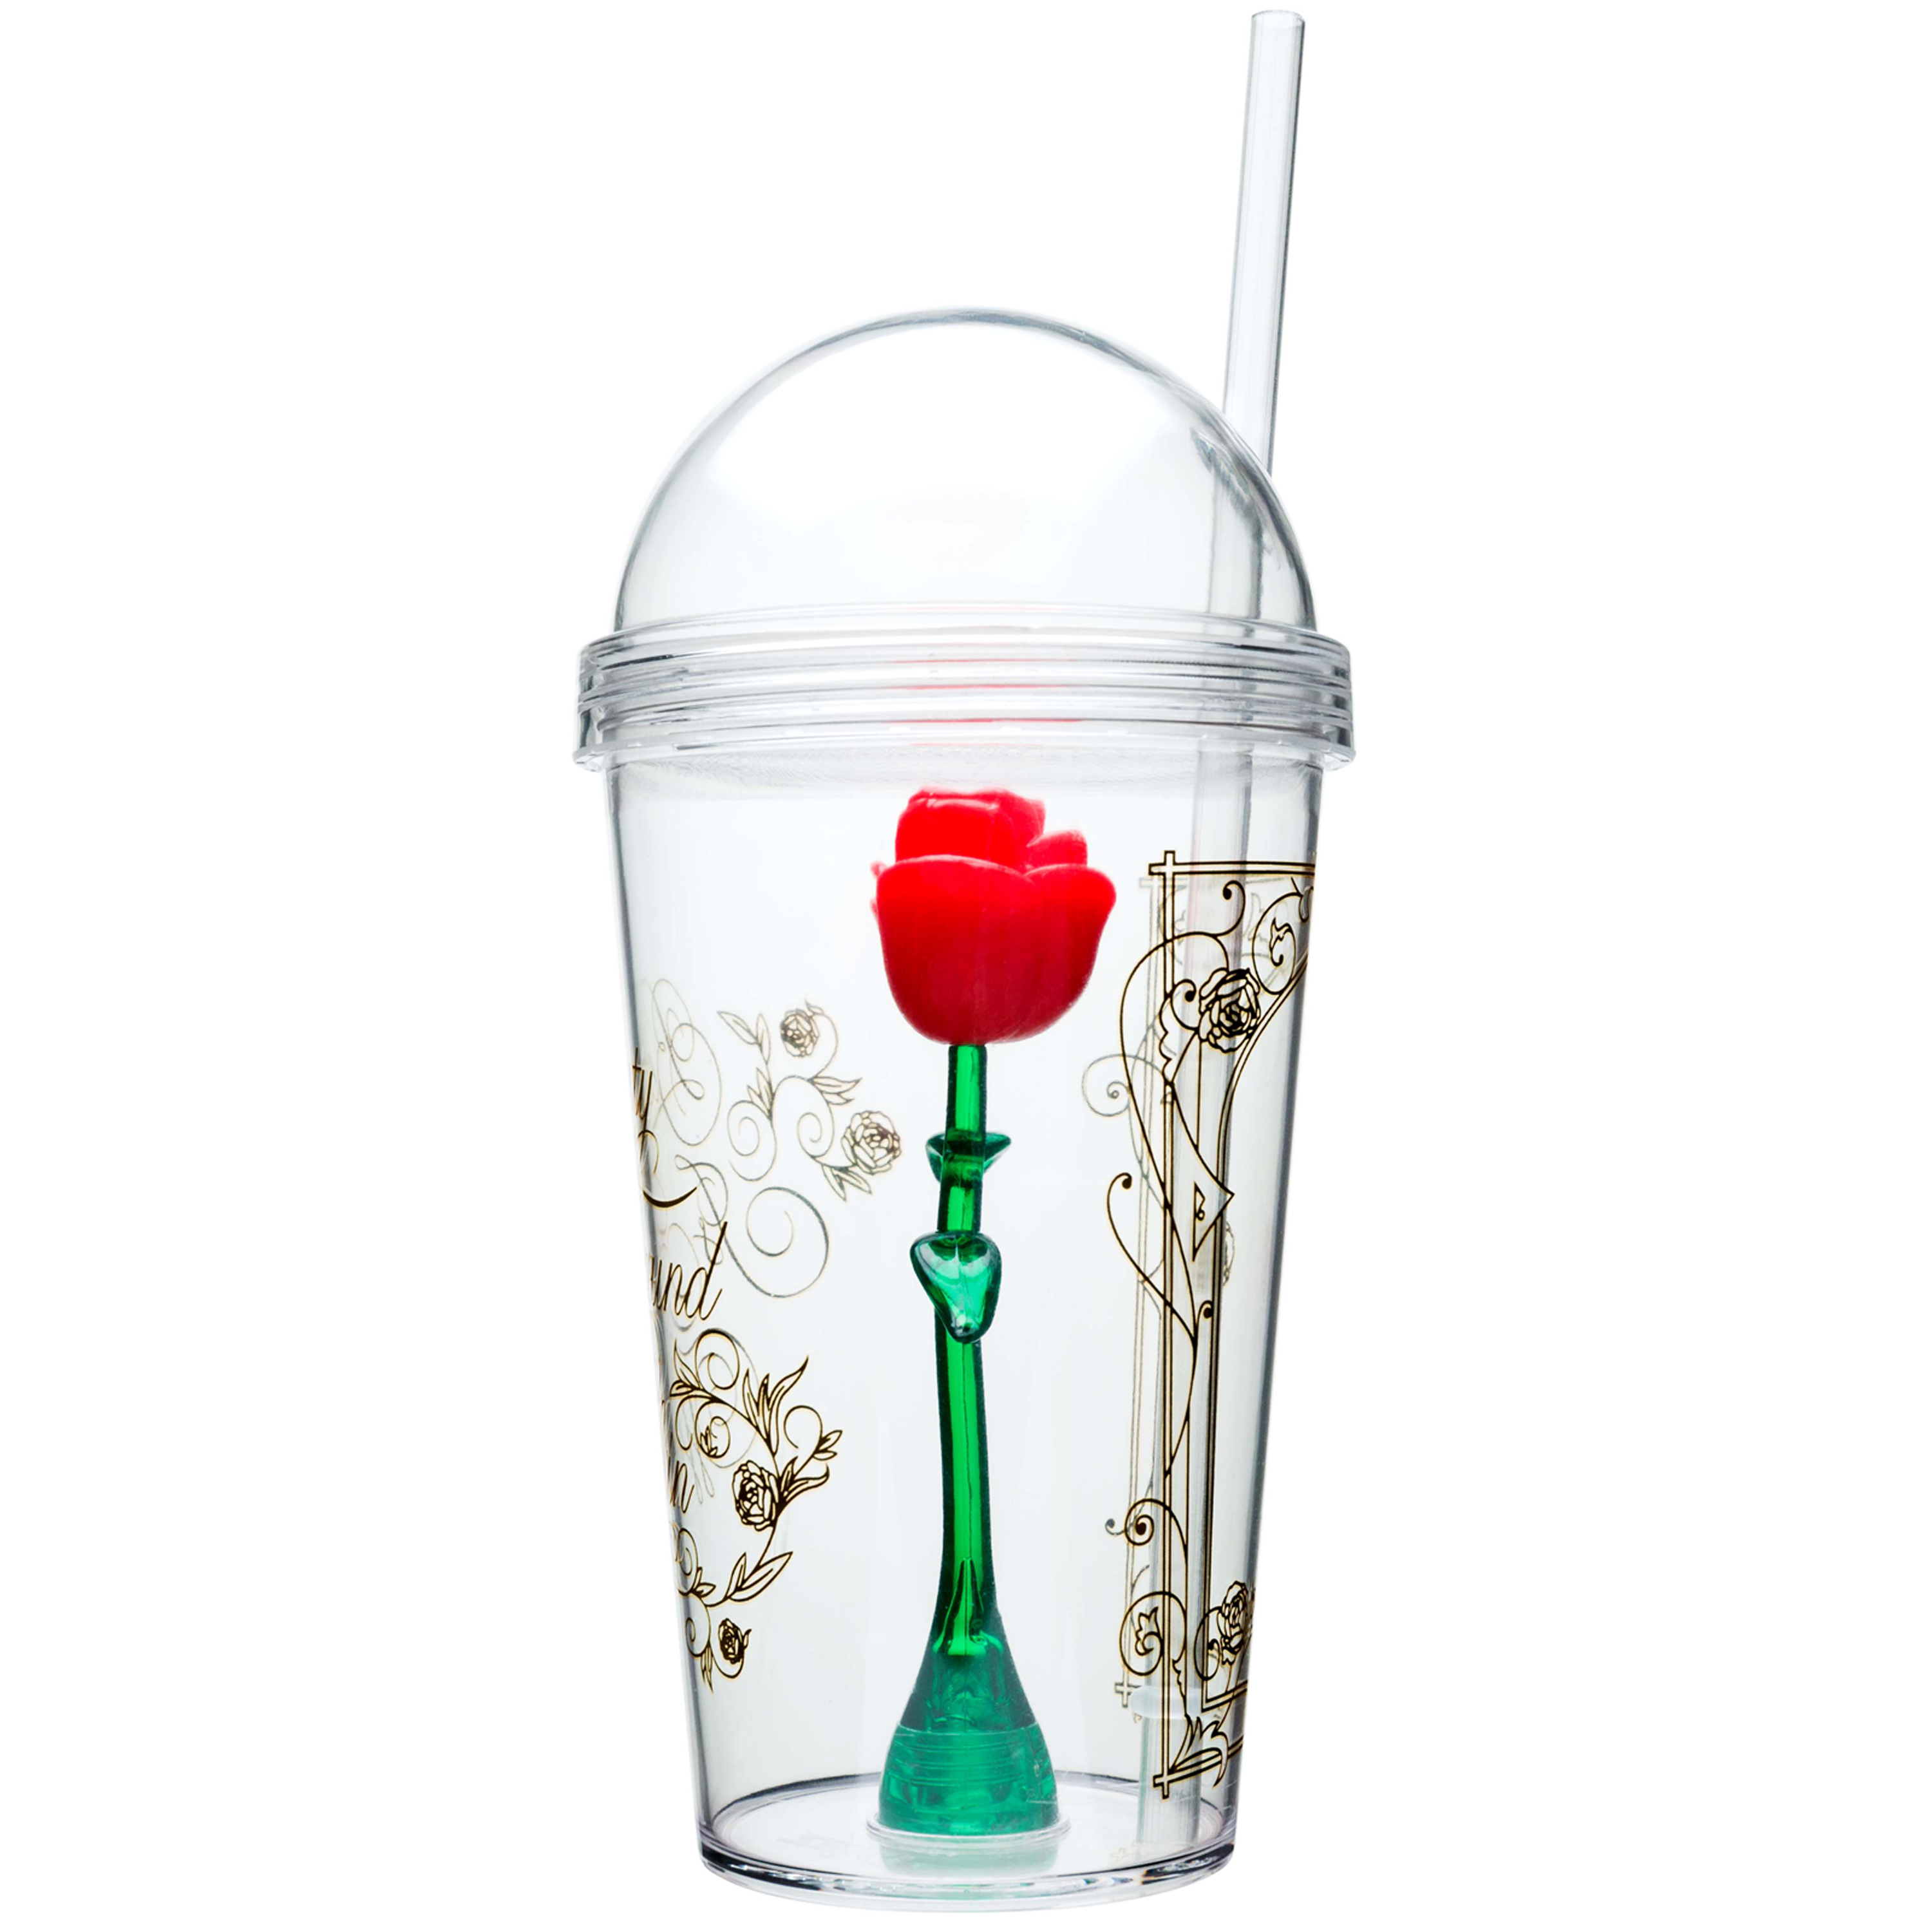 Beauty And The Beast 22 ounce Kid's Tumbler, Enchanted Rose slideshow image 5